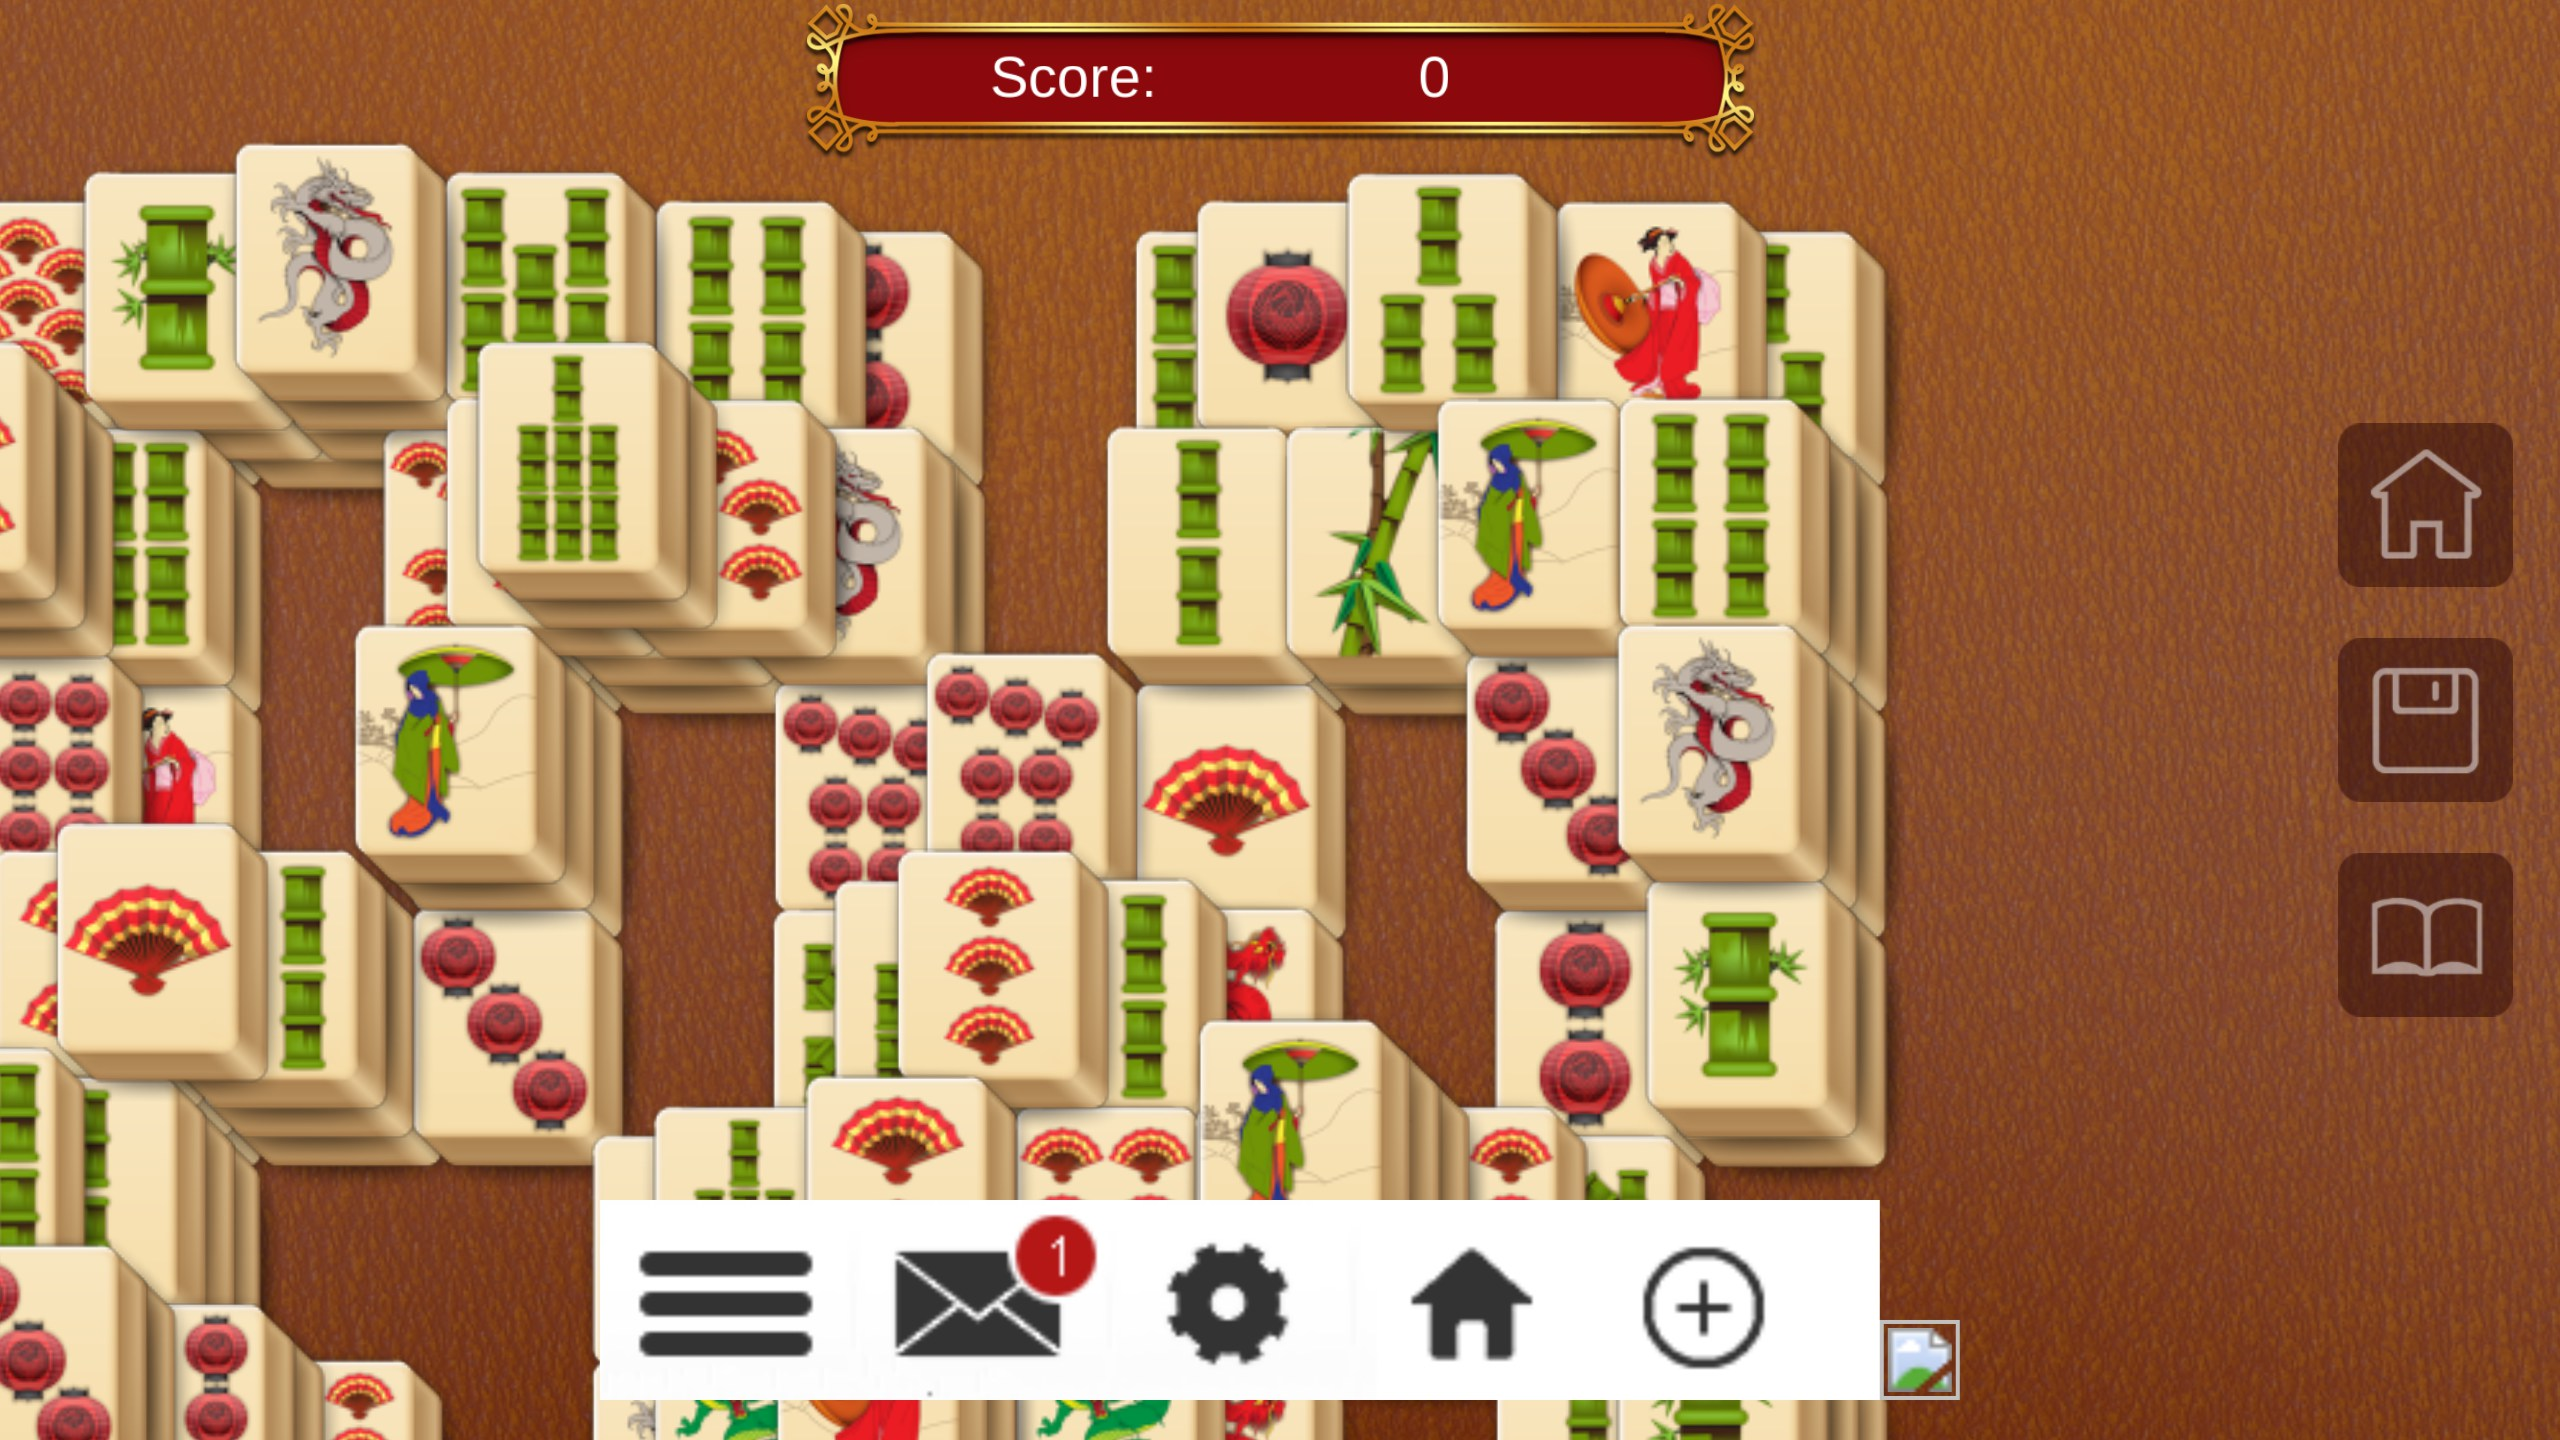 Mahjong Solitaire Guru - Games for Android 2018 - Free ...